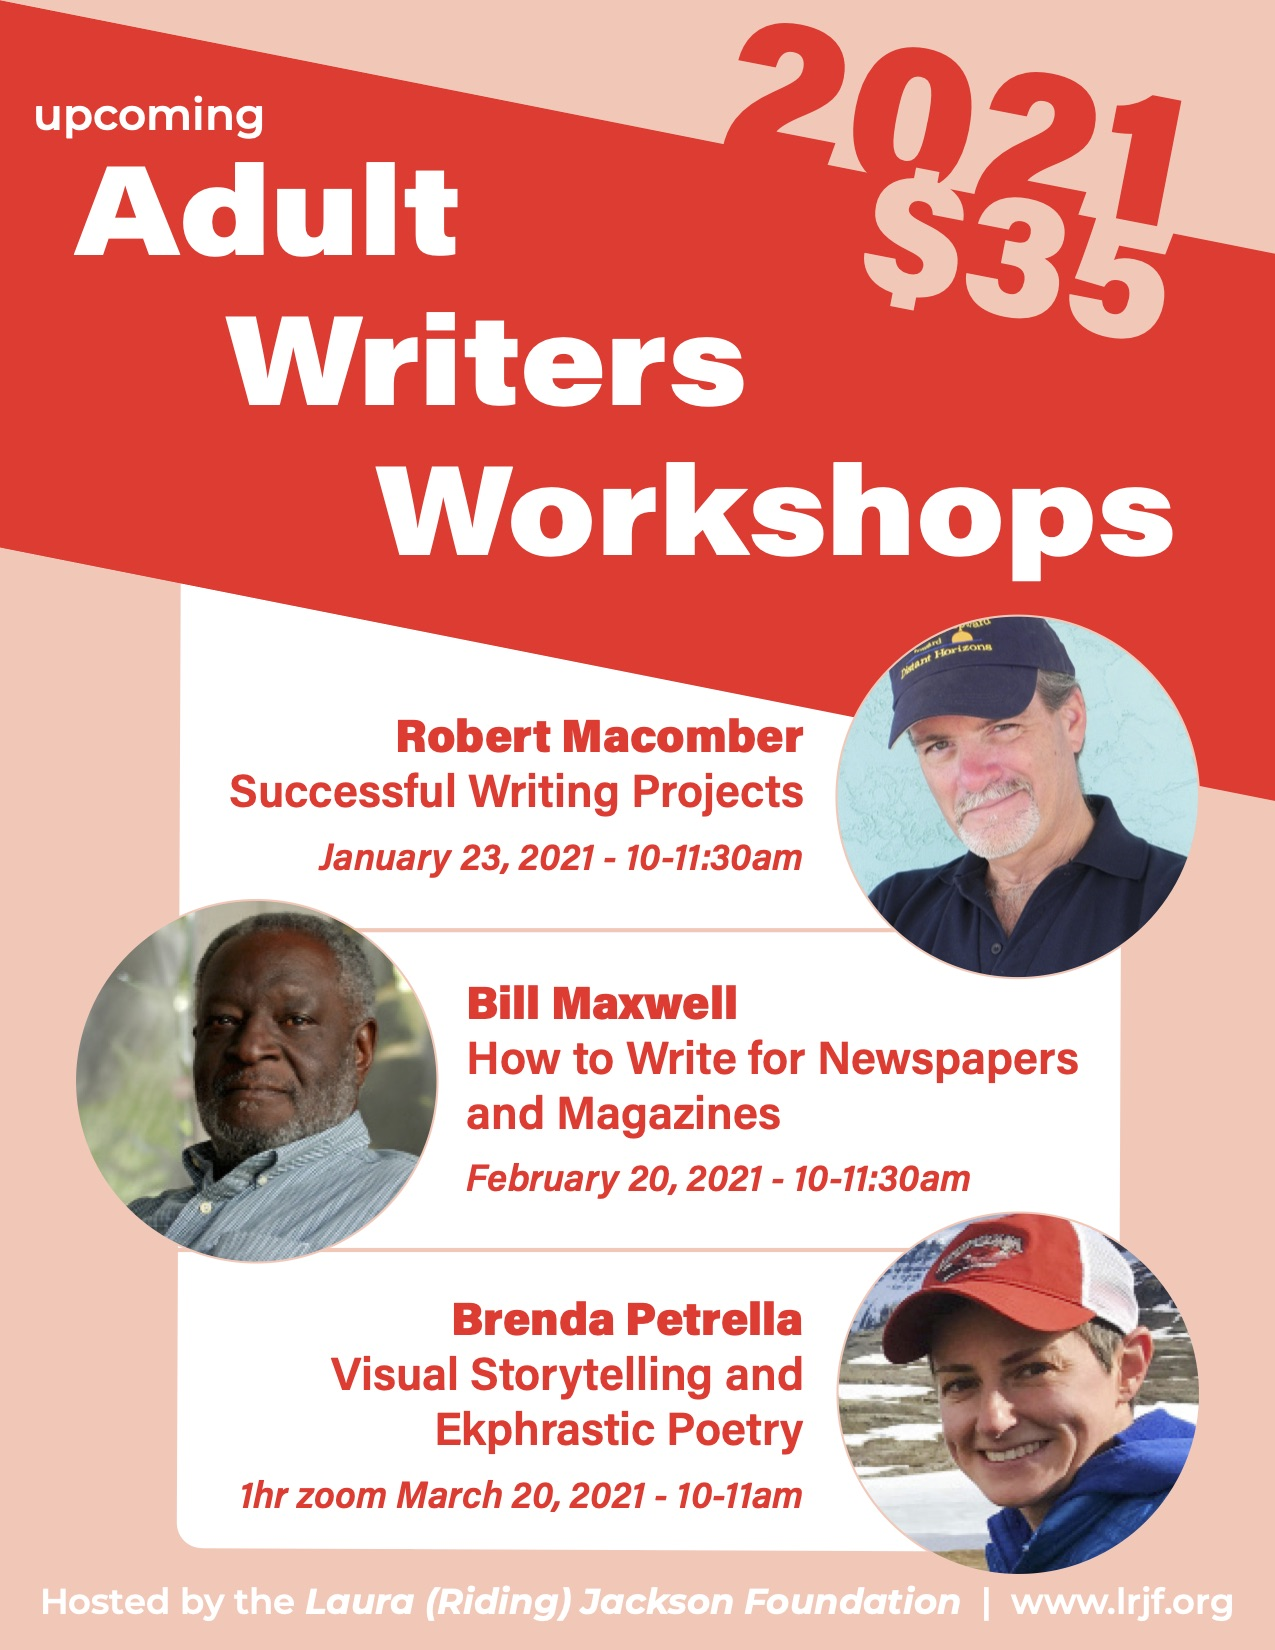 Advertising adult writer workshops